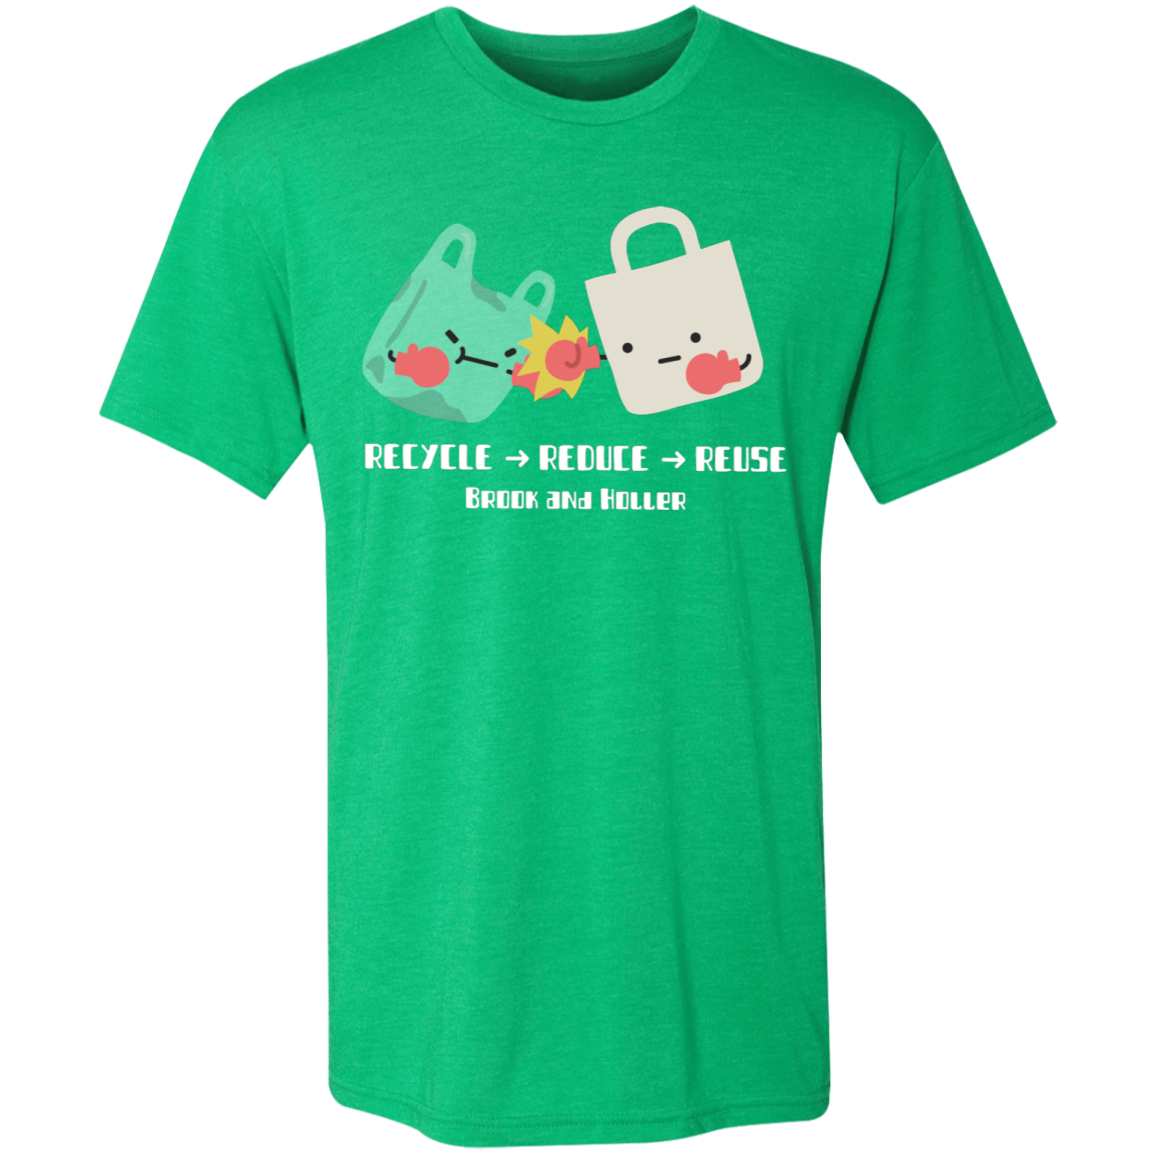 Brook and Holler - Recycle Reduce Reuse Tee